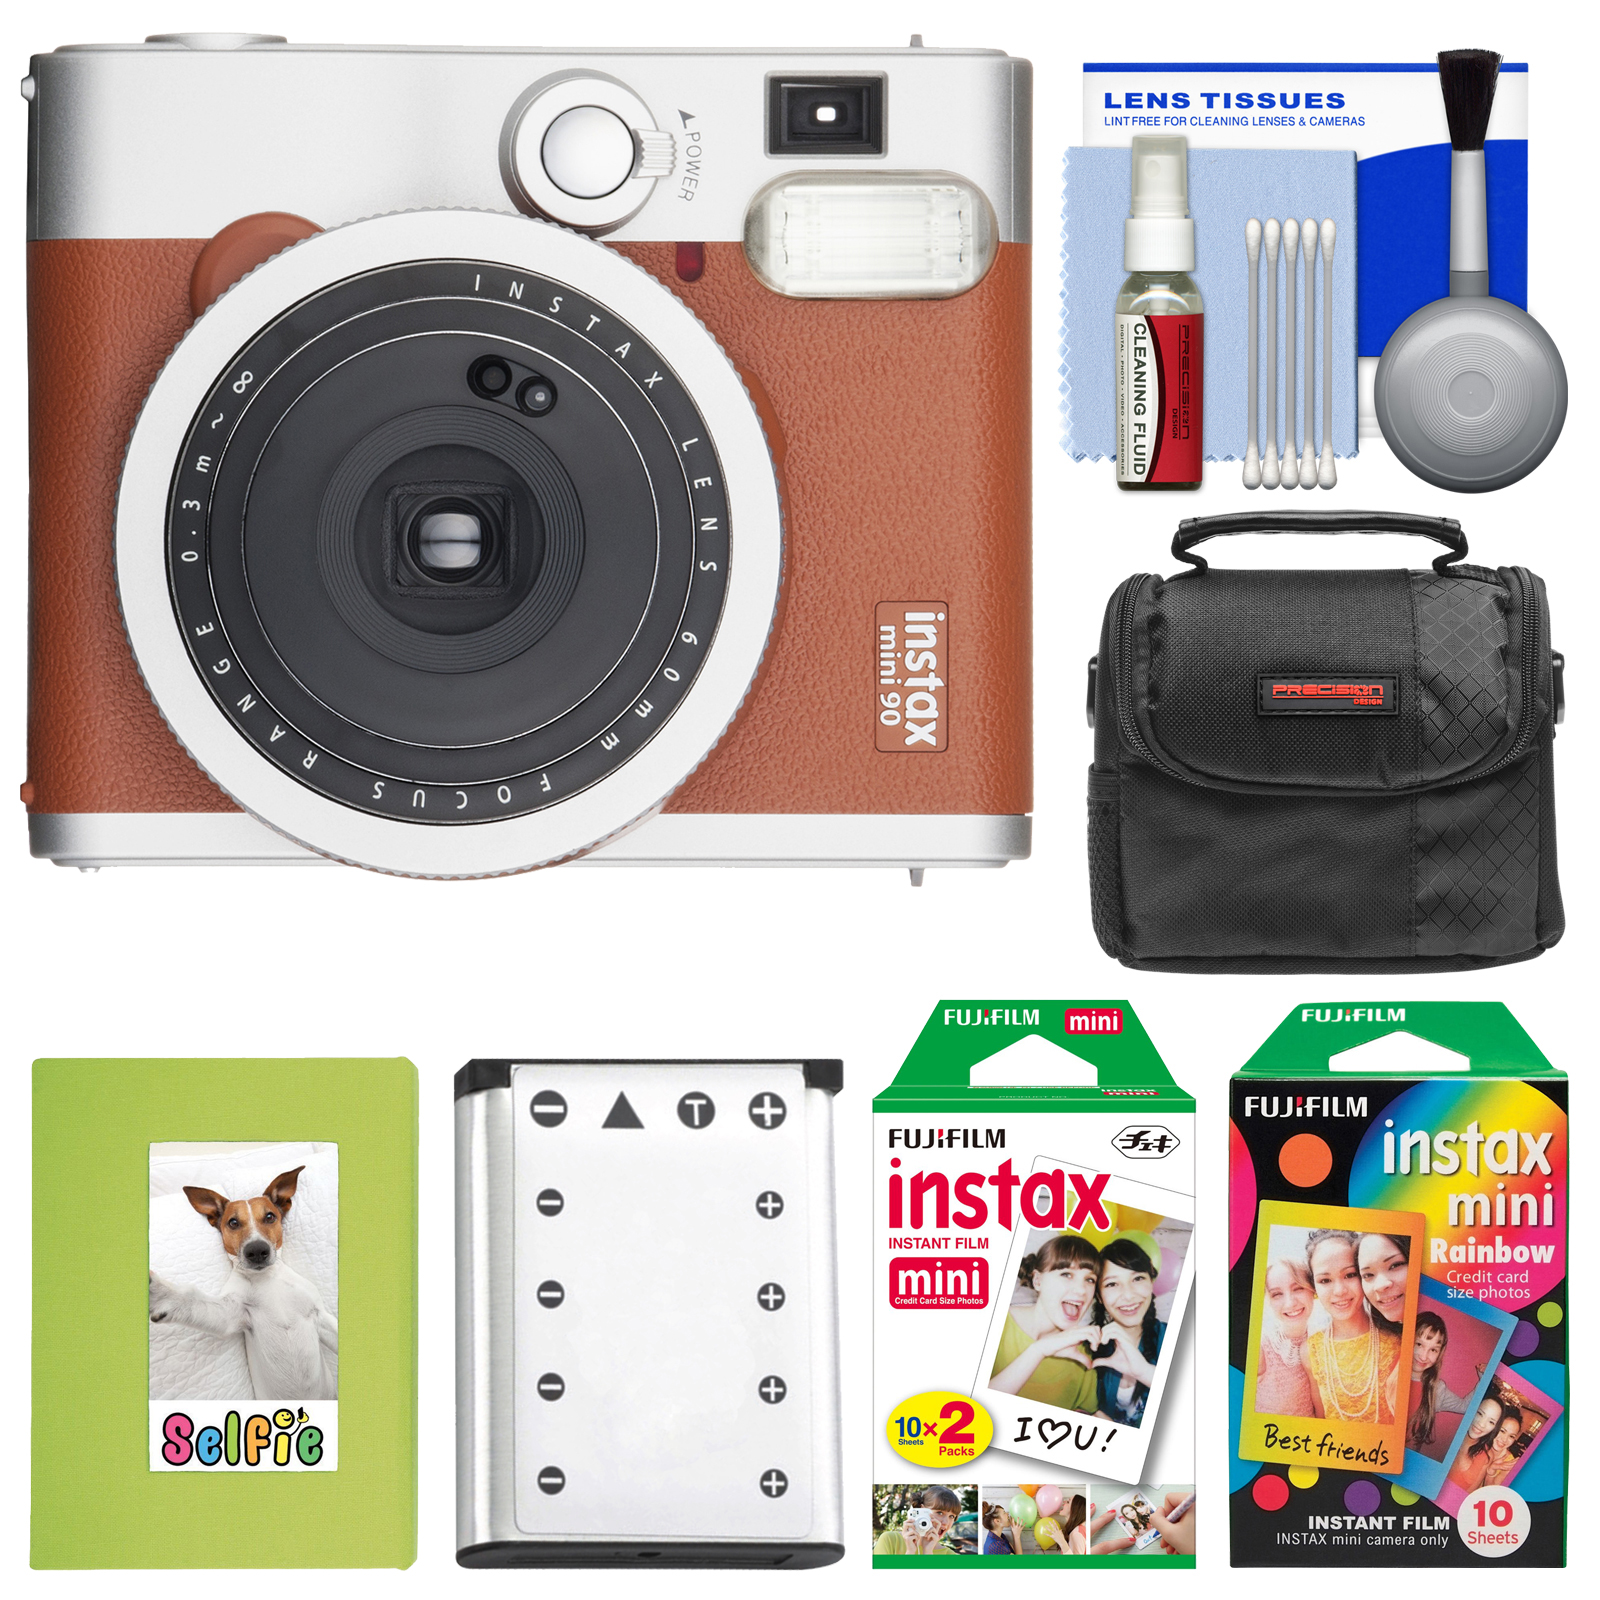 Fujifilm Instax Mini 90 Neo Classic Instant Film Camera (Brown) with 20 Twin Prints & 10 Rainbow Prints   Case   Battery   Photo Album Kit